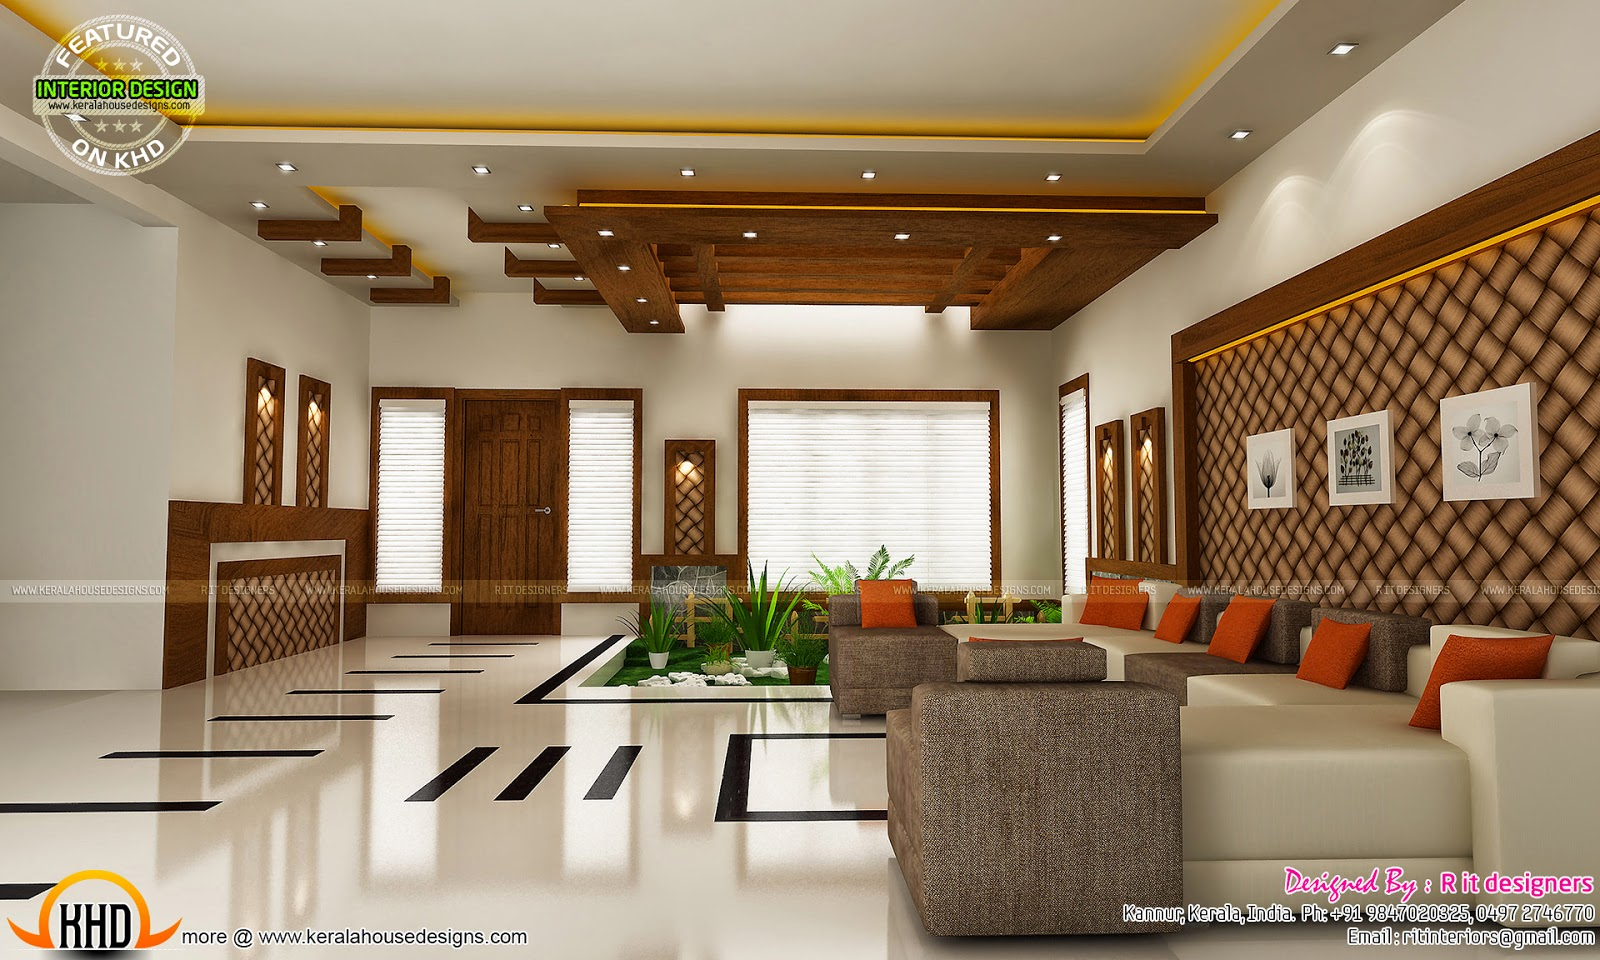 Modern and unique dining kitchen interior kerala home for House interior design kerala photos